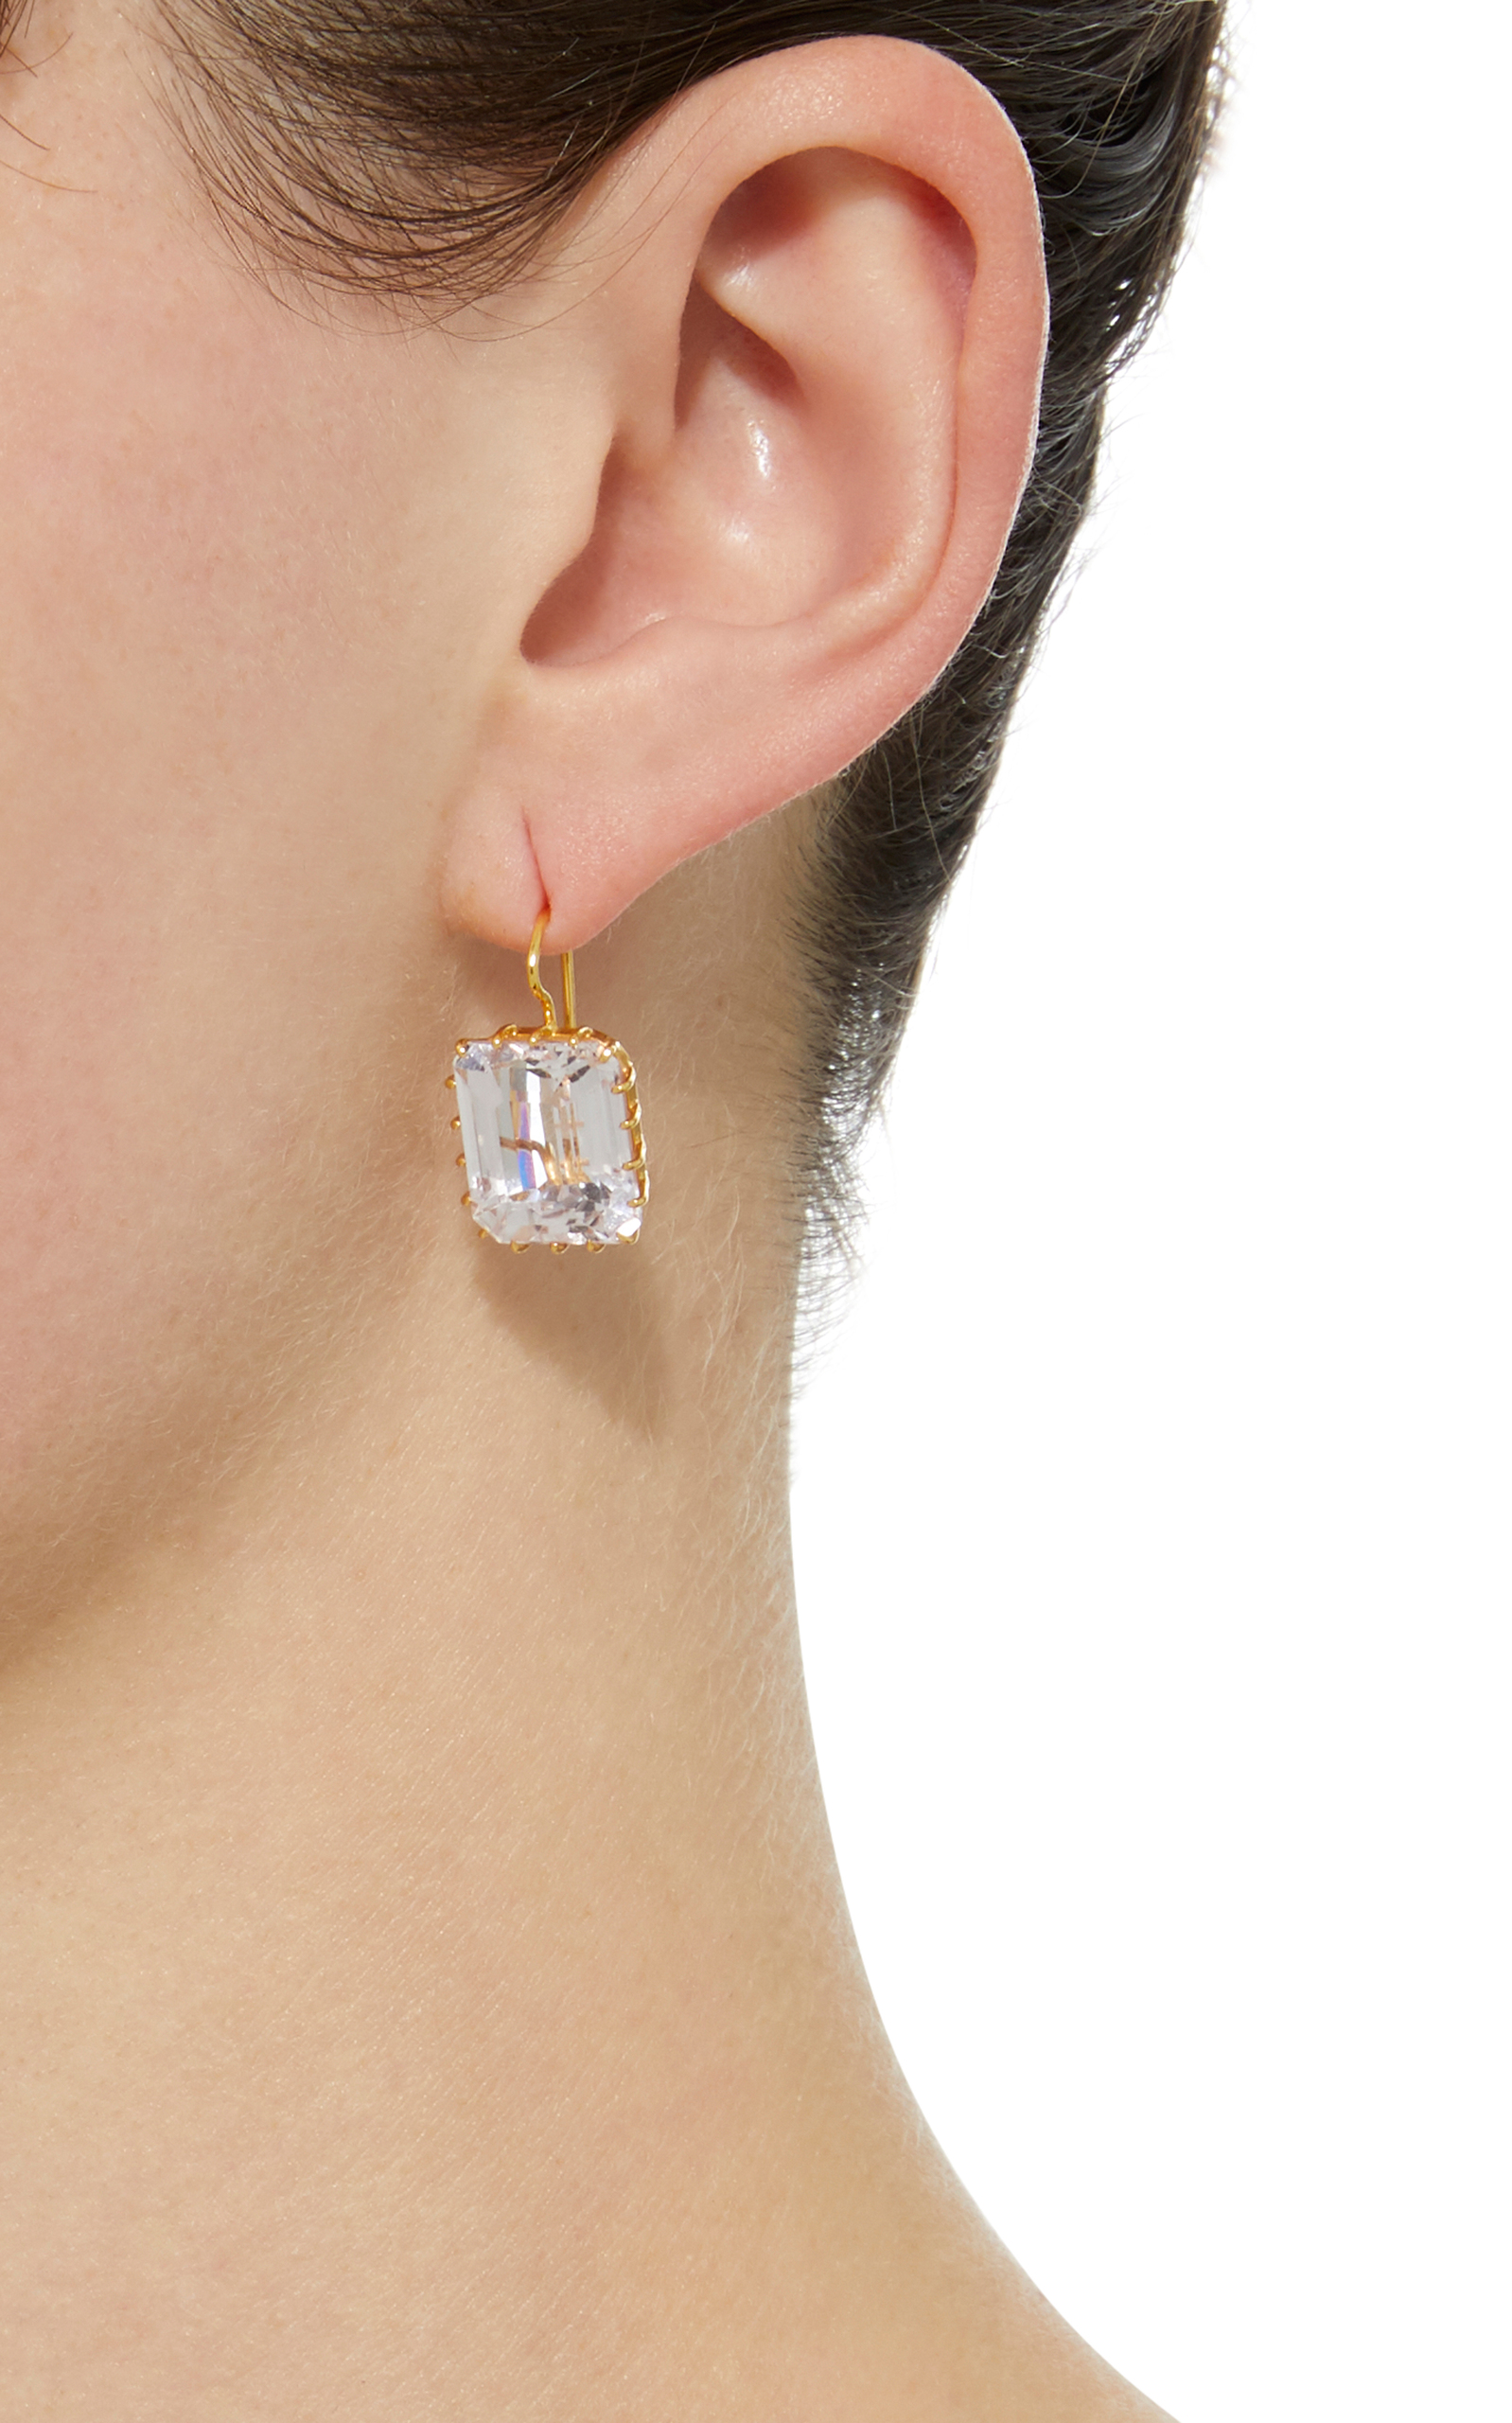 gibbings daniel jewelry earrings handcrafted shop drops fine kunzite